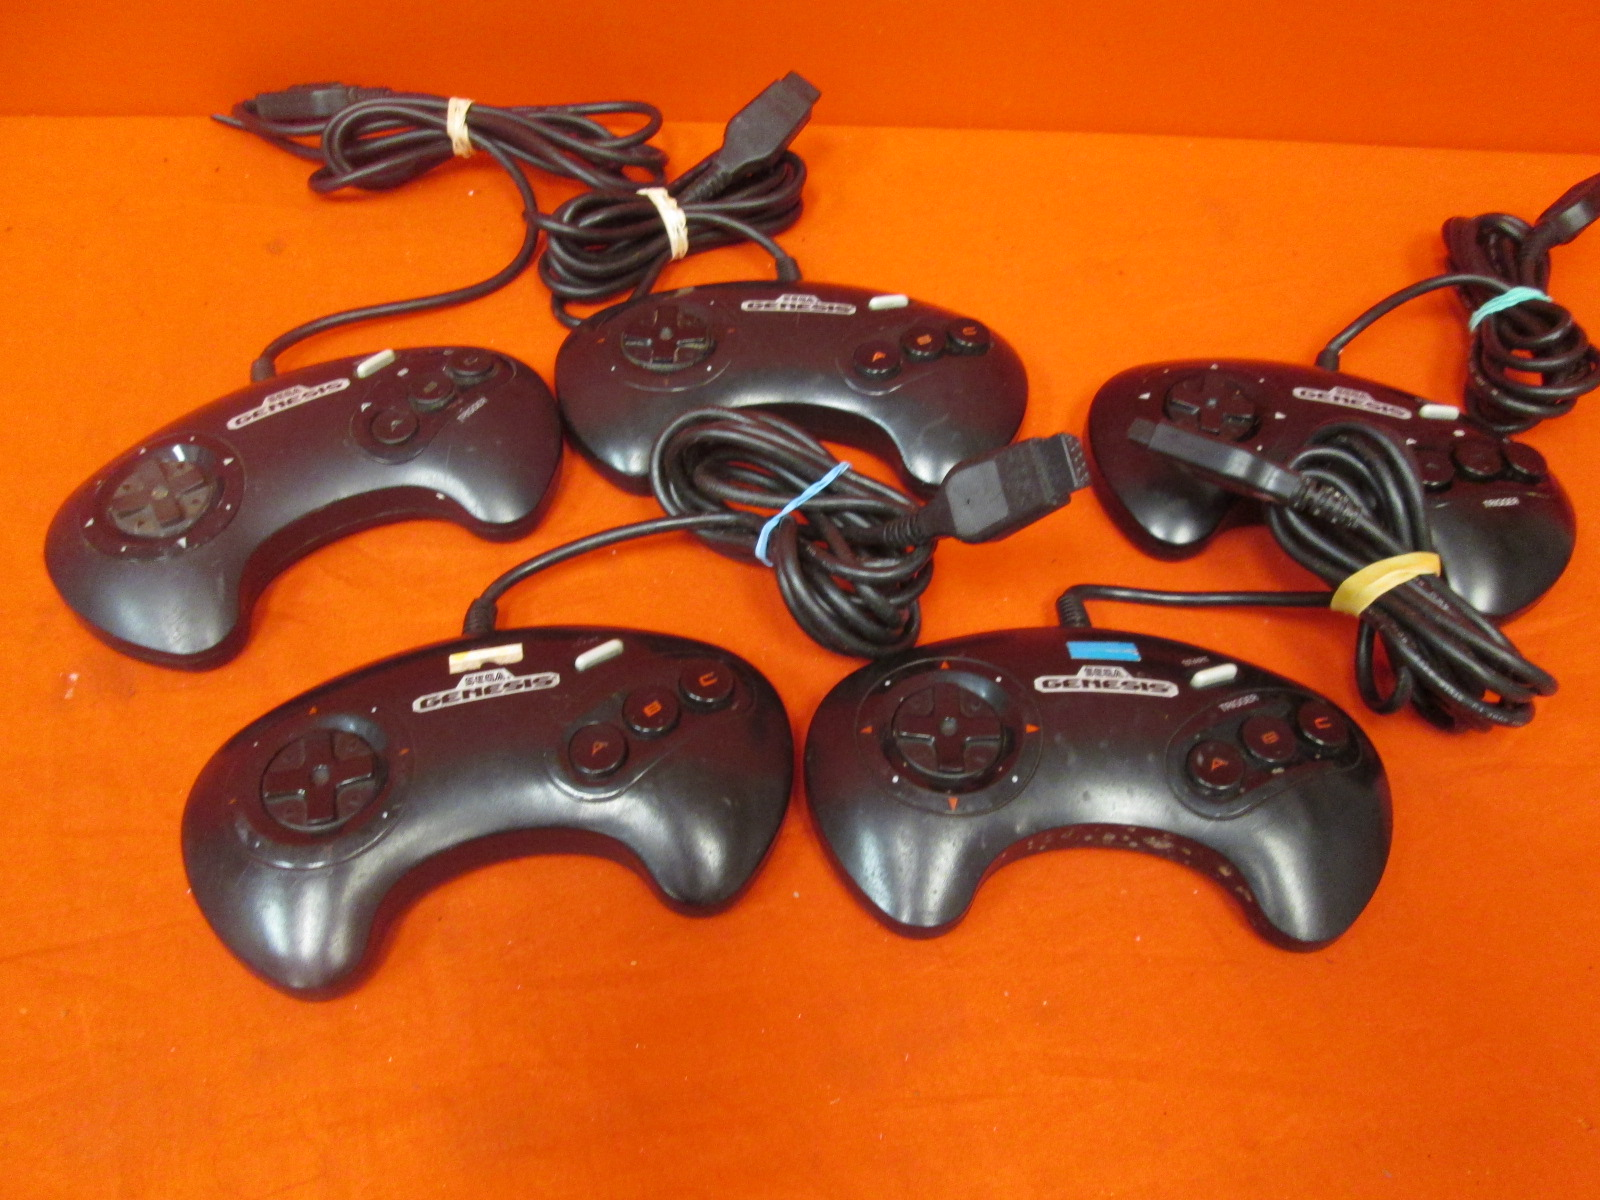 Lot Of 5 Game Controller Model #1650 For Sega Genesis Broken